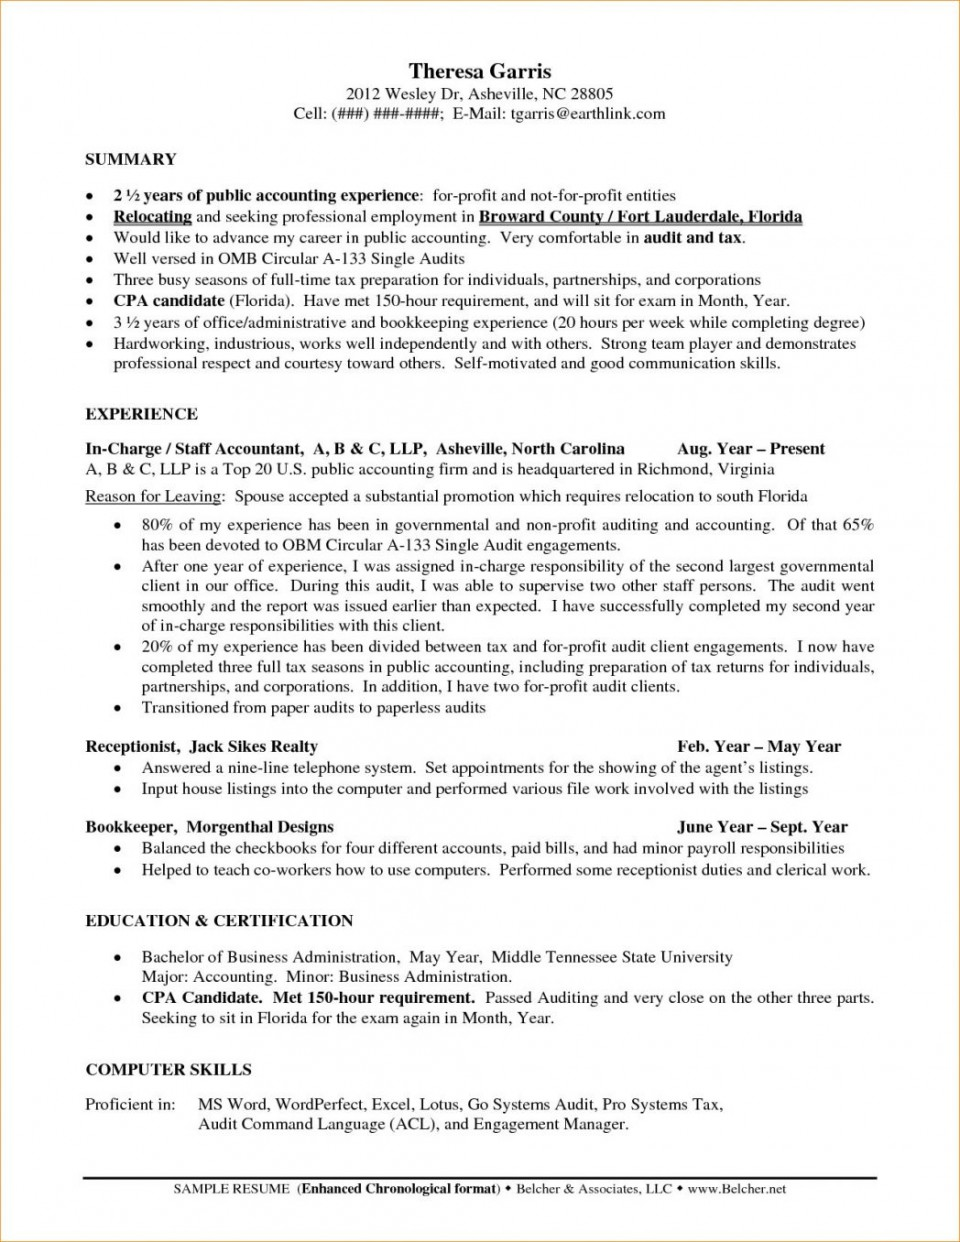 024 Essay Example Best Solutions Of Professional Mba Reflective Help Mri Tech Writing On Teaching Sample Cover Grea Leadership Introduction Using Gibbs Model In Third Person Work Experience Beautiful Examples Personal Pdf About Life Format 960